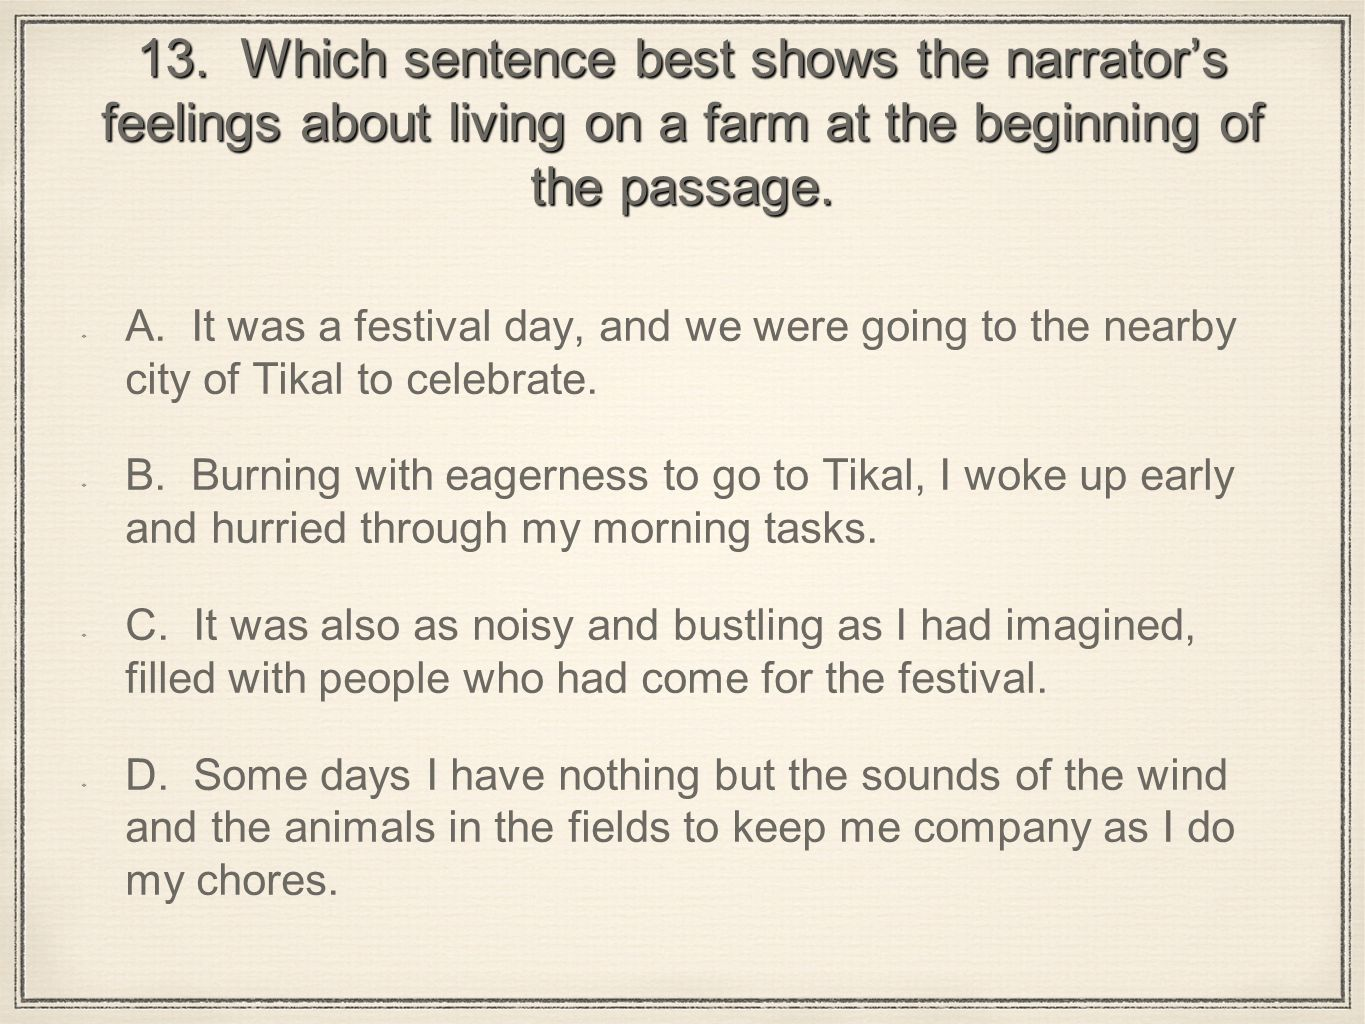 13. Which sentence best shows the narrator's feelings about living on a farm at the beginning of the passage.